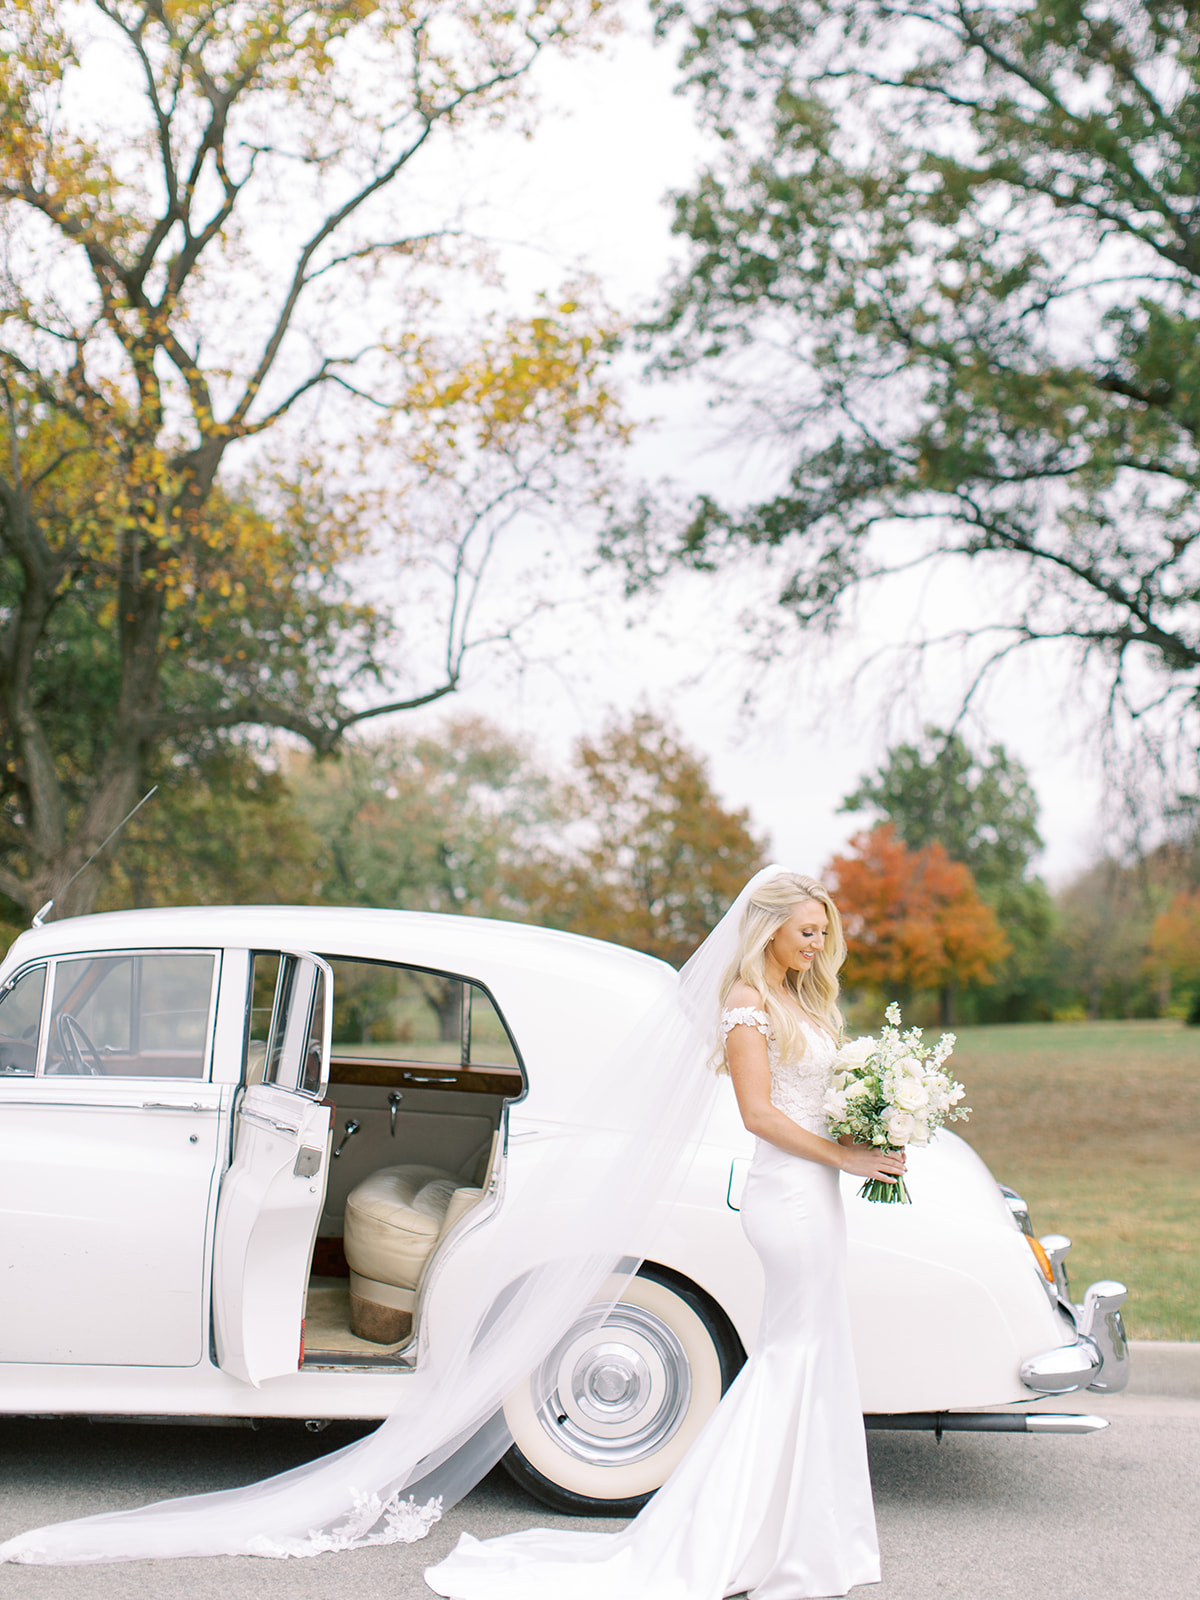 Bride smiling at bouquet in front of classic car